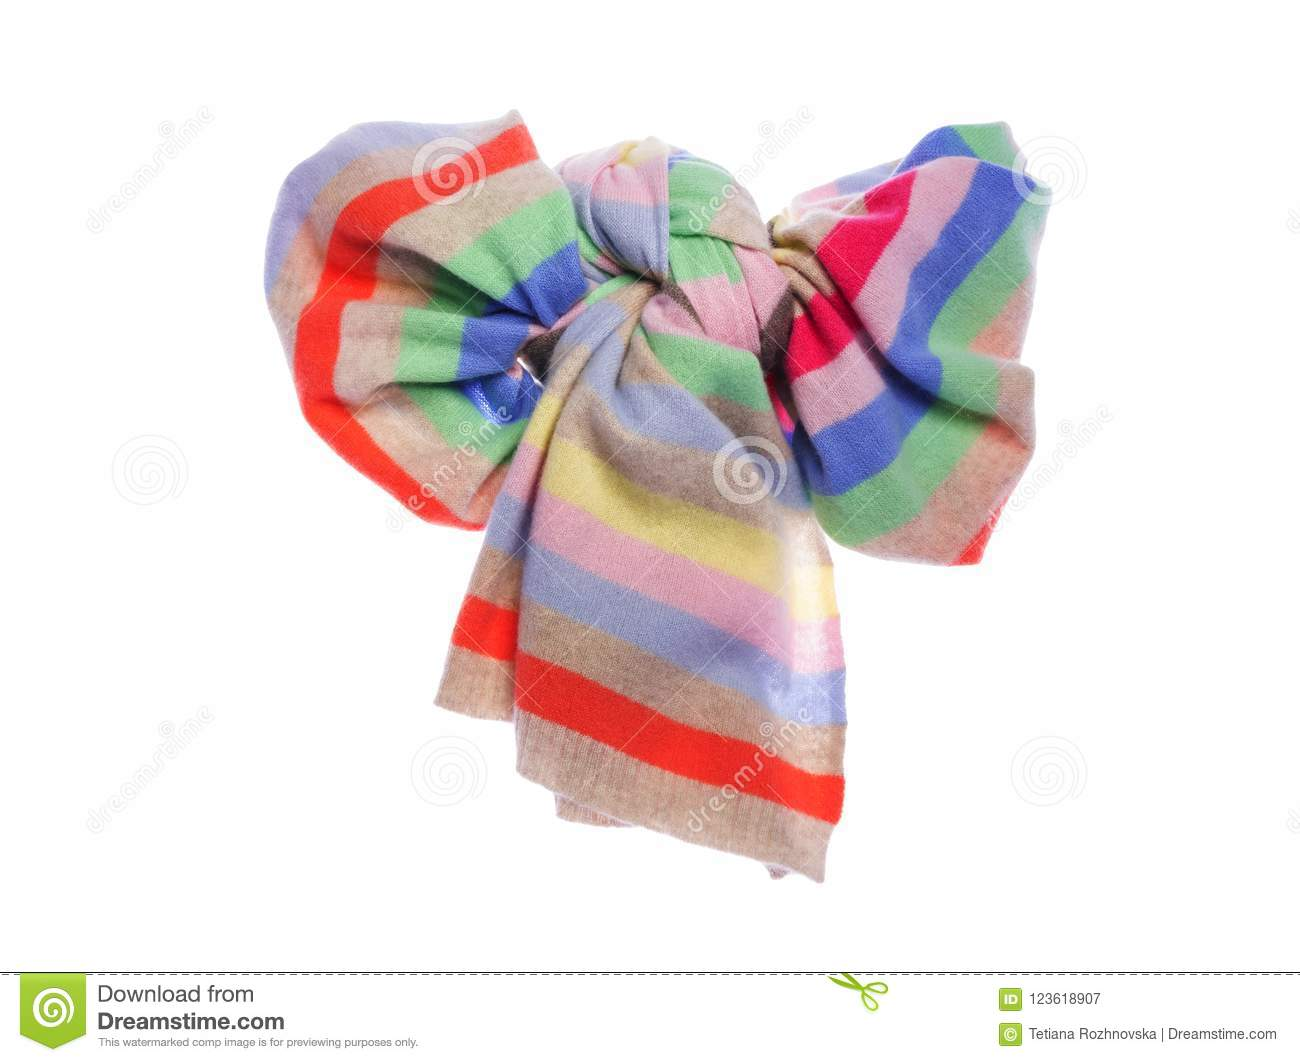 ee83ef1c99286 Warm Winter Scarf, Tied Like A Big Bow. Stock Image - Image of ...